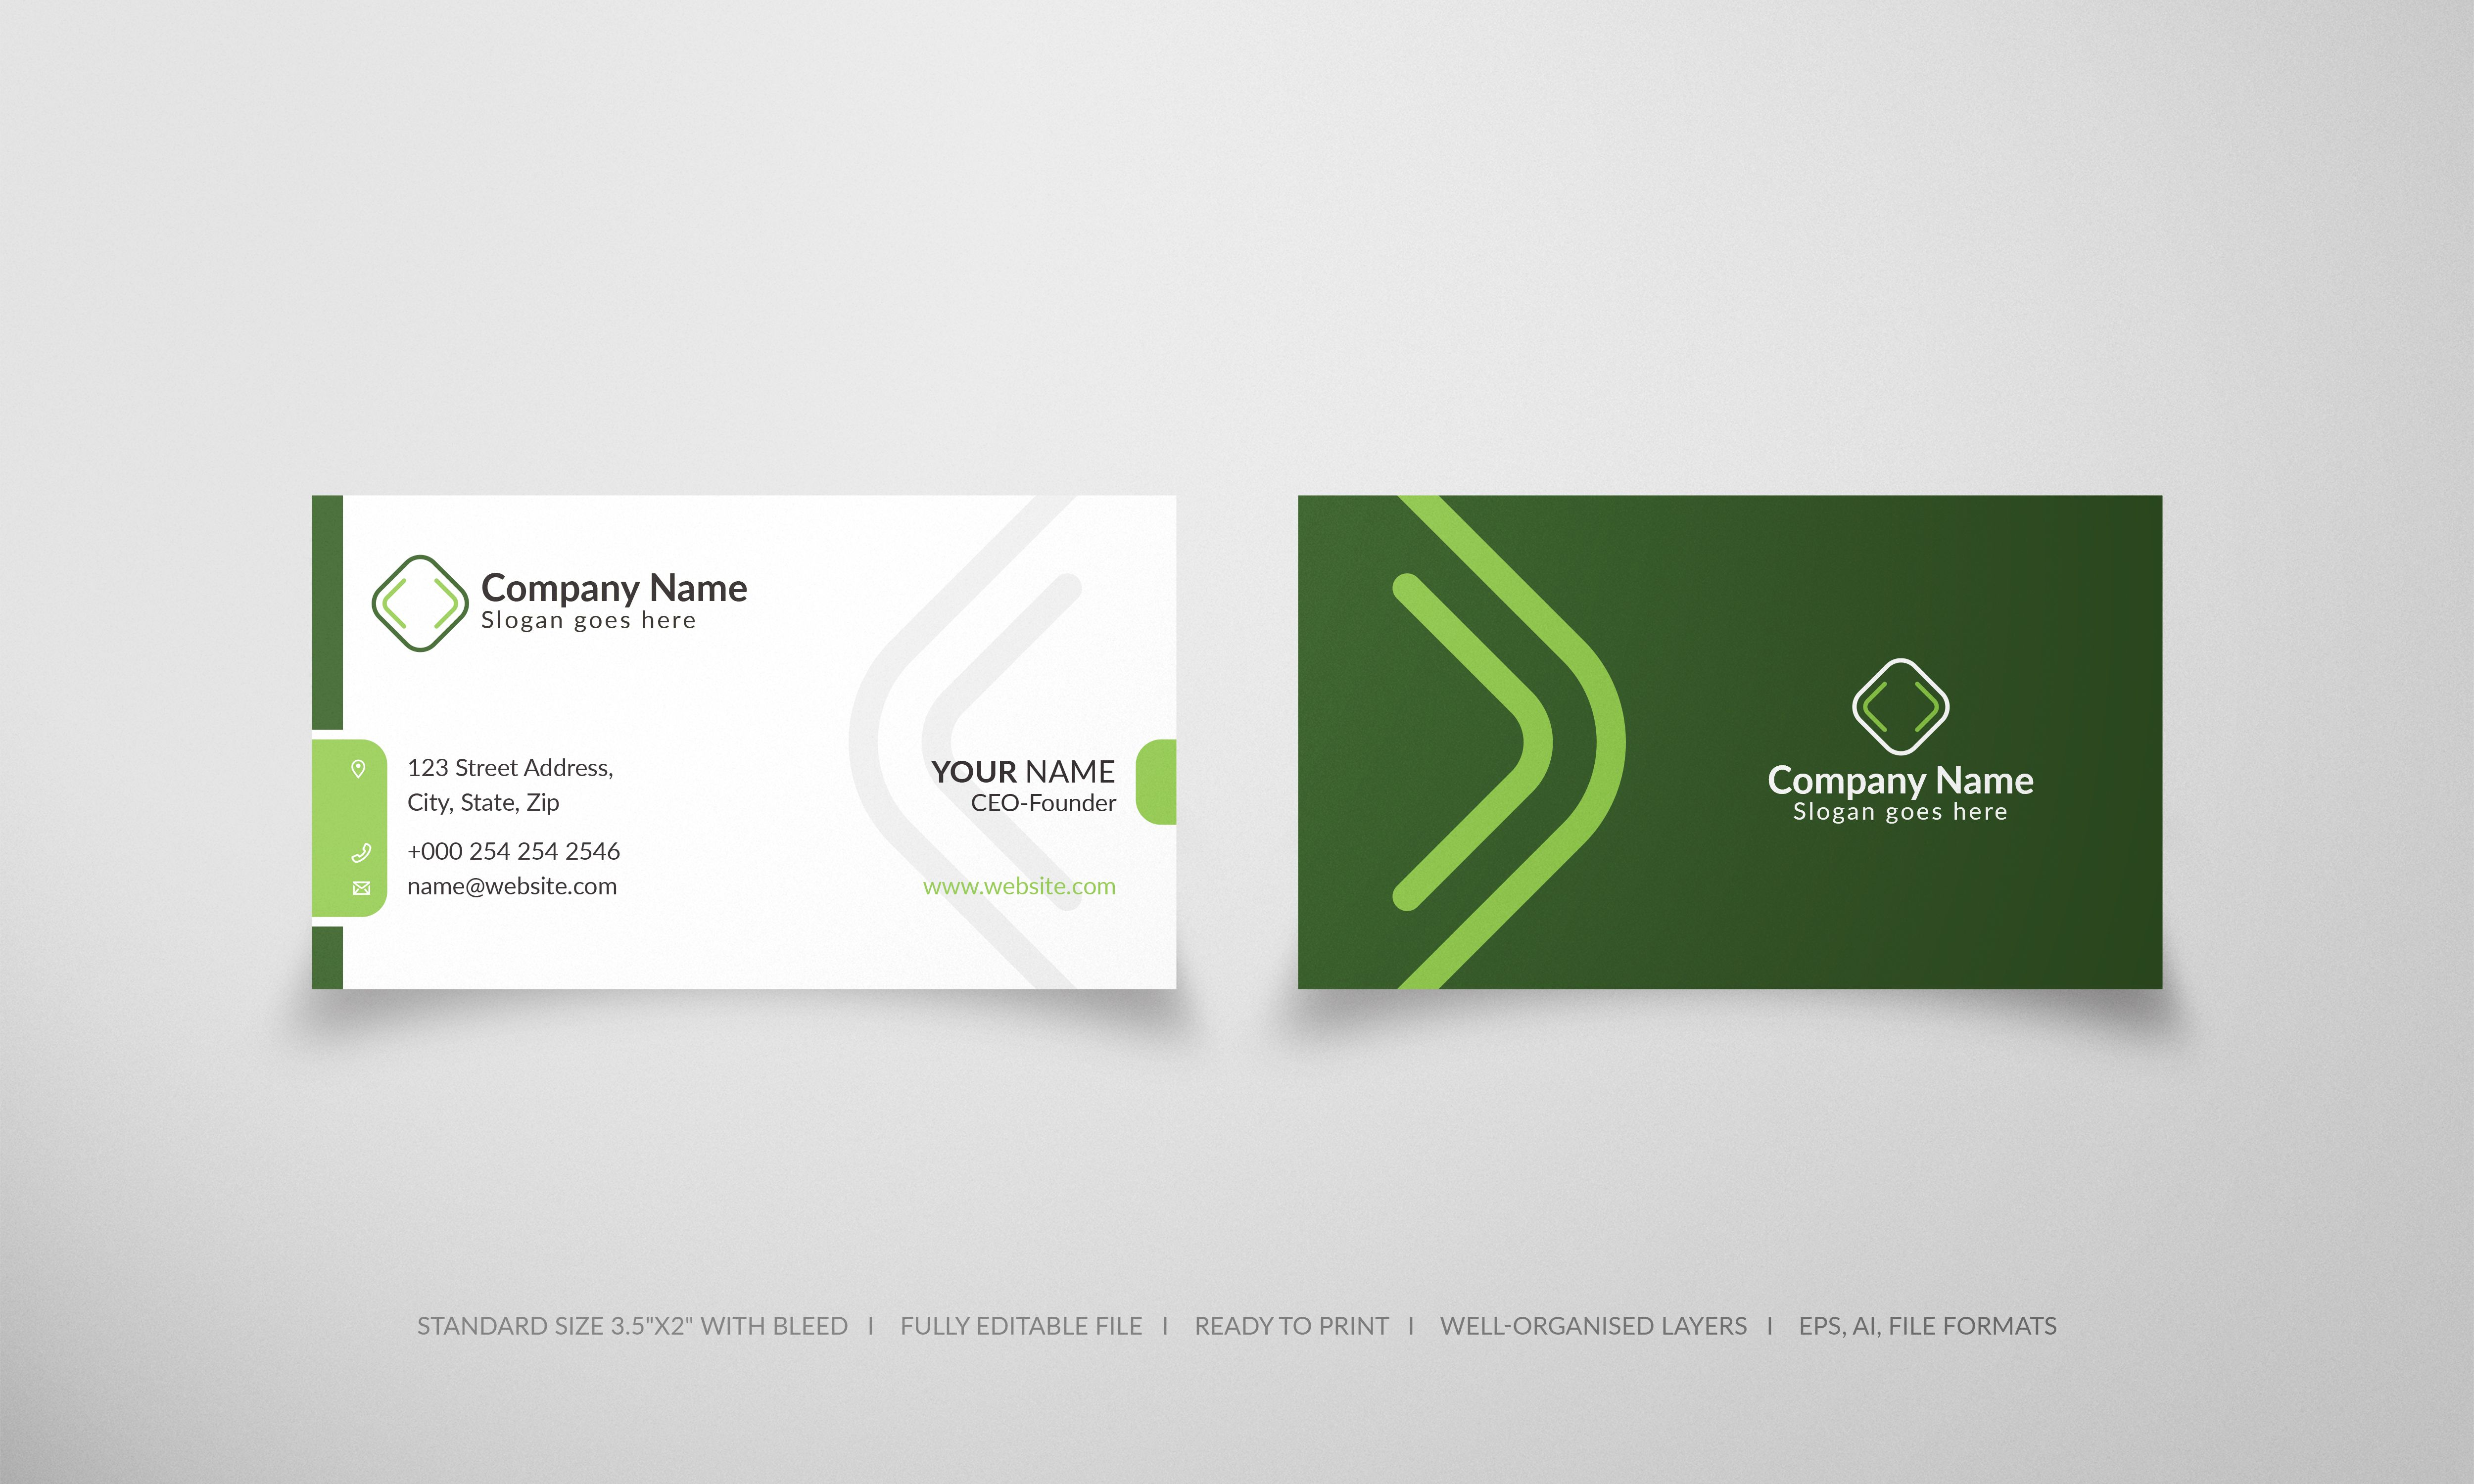 Free Business Card Templates Free Business Card Templates Business Card Design Green Business